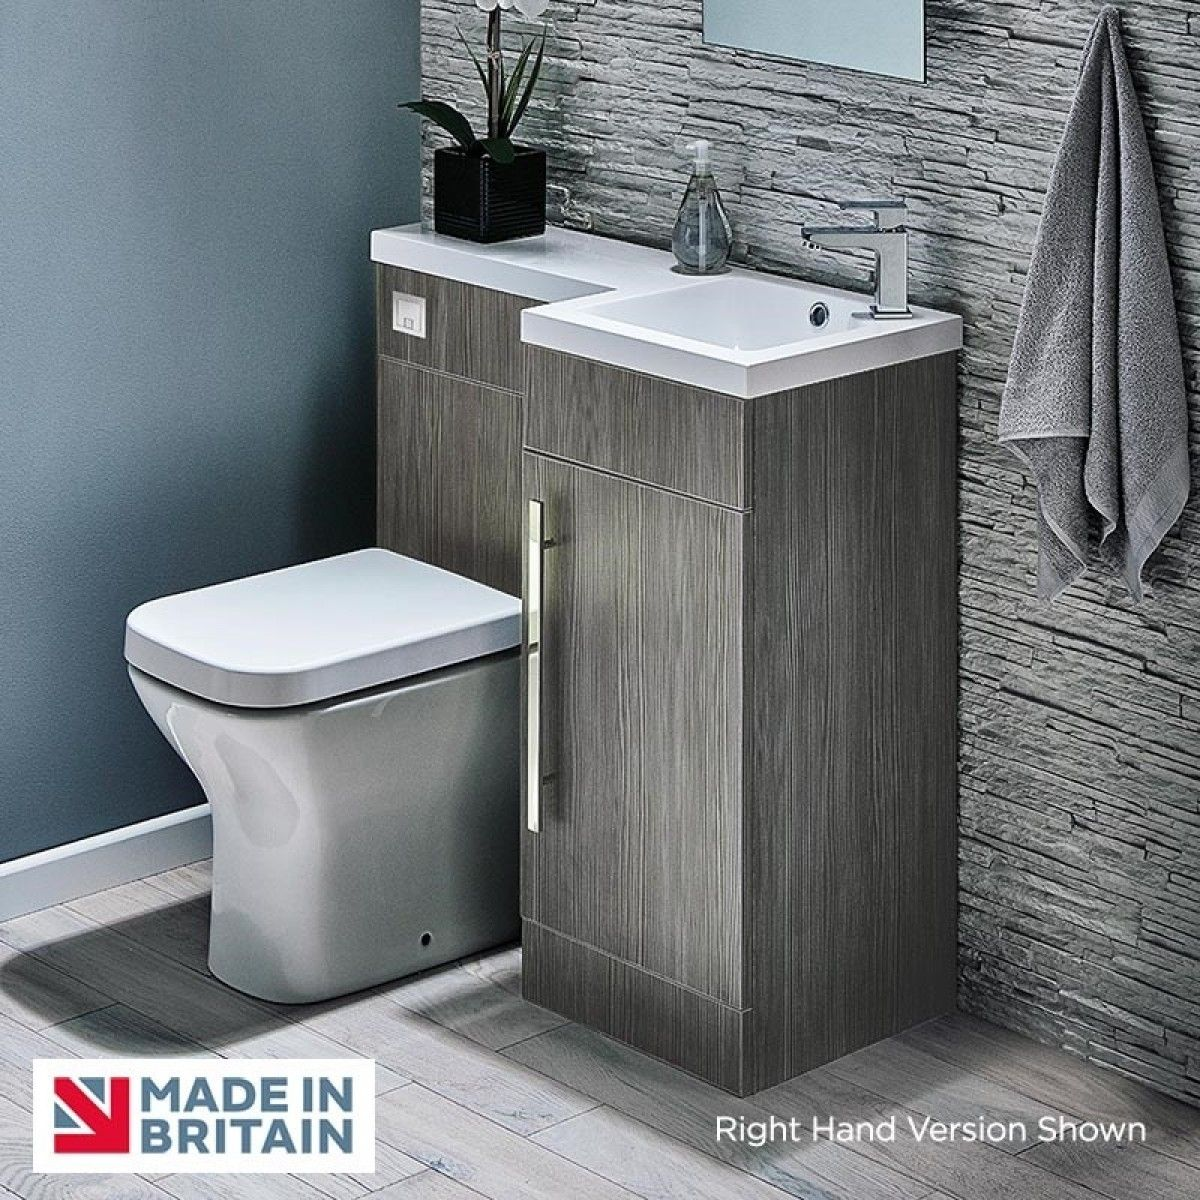 Modern And Compacted Toilet And Sink Unit Polymarble Basin Is Easy To Clean And Highly Practical 18mm S Toilet And Sink Unit Space Saving Toilet Small Bathroom